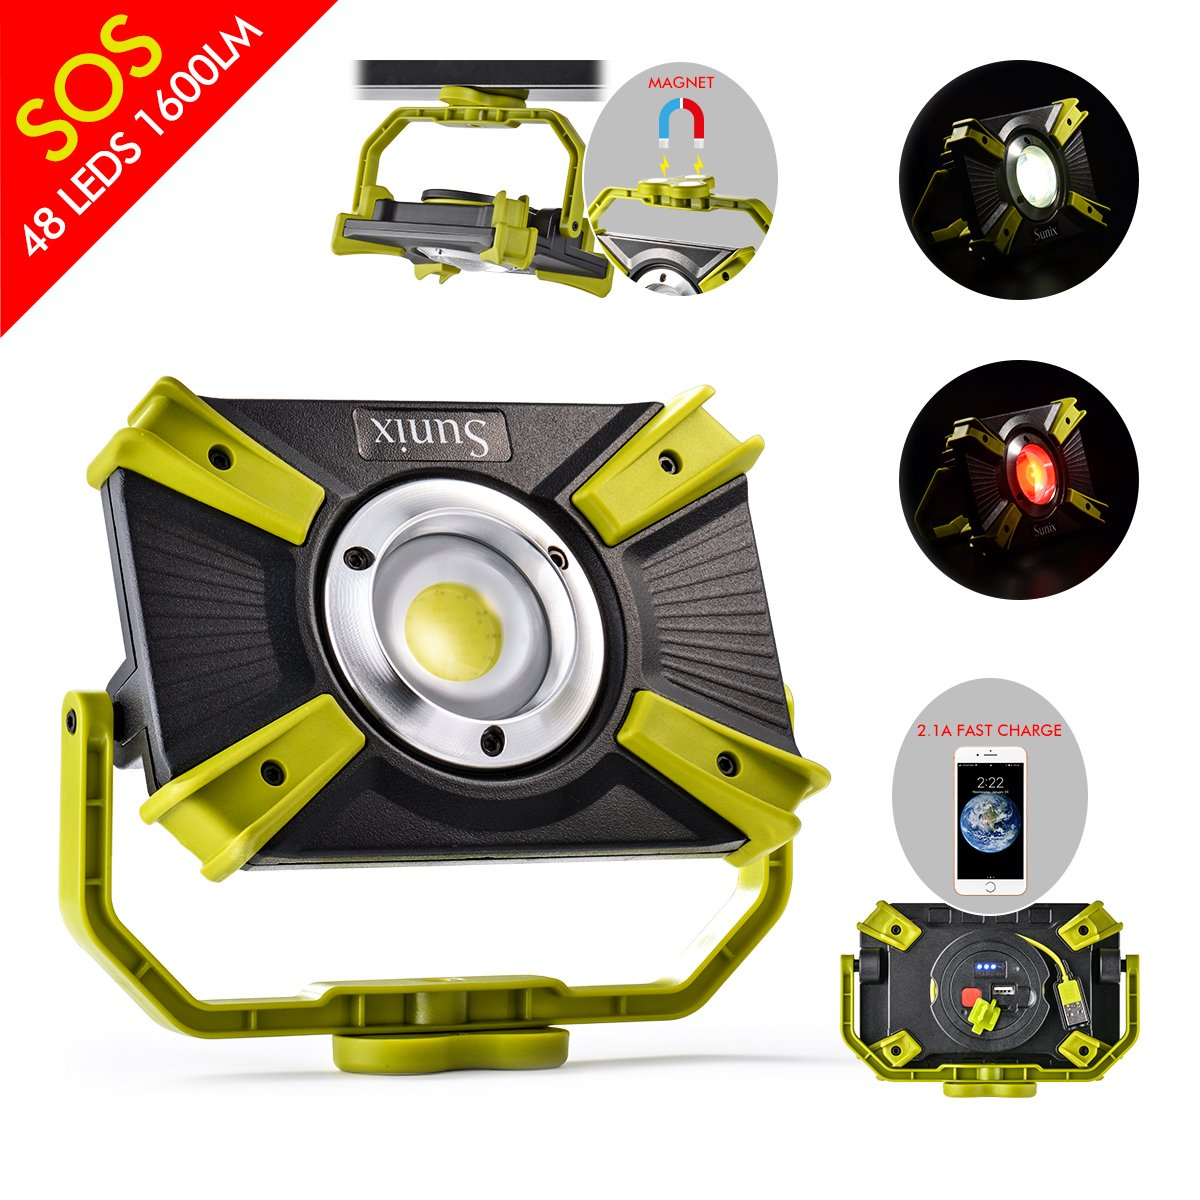 Rechargeable LED Work Light 20W 1600LM SOS Mode 2.1A Fast Charging Magnetic Base Waterproof Spotlights Outdoor Camping Emergency Floodlights For Truck Tractor Workshop Construction Site by XCSOURCE